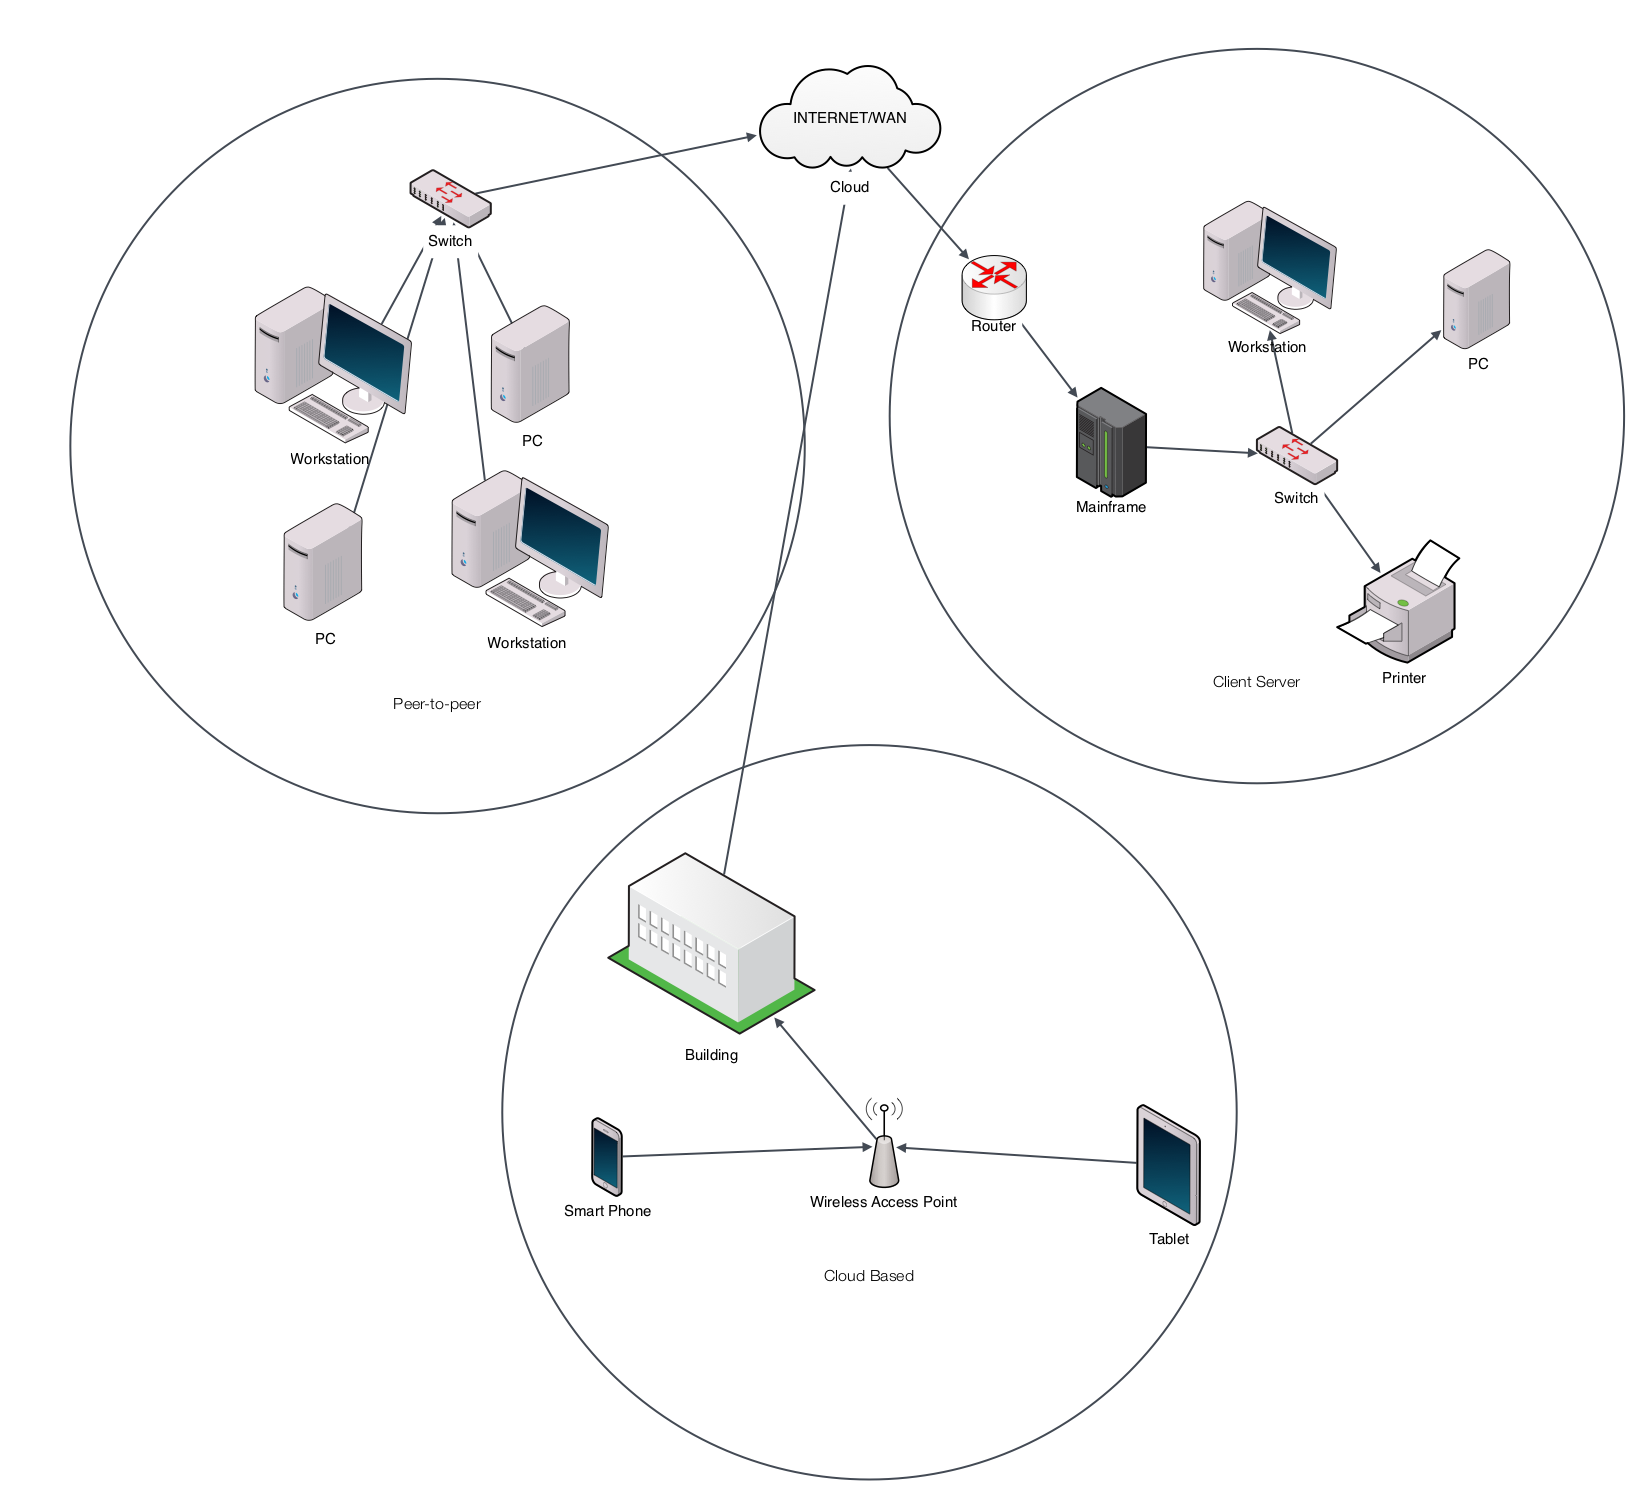 Here is a diagram of the different networks and how they communicate to the internet and each other.